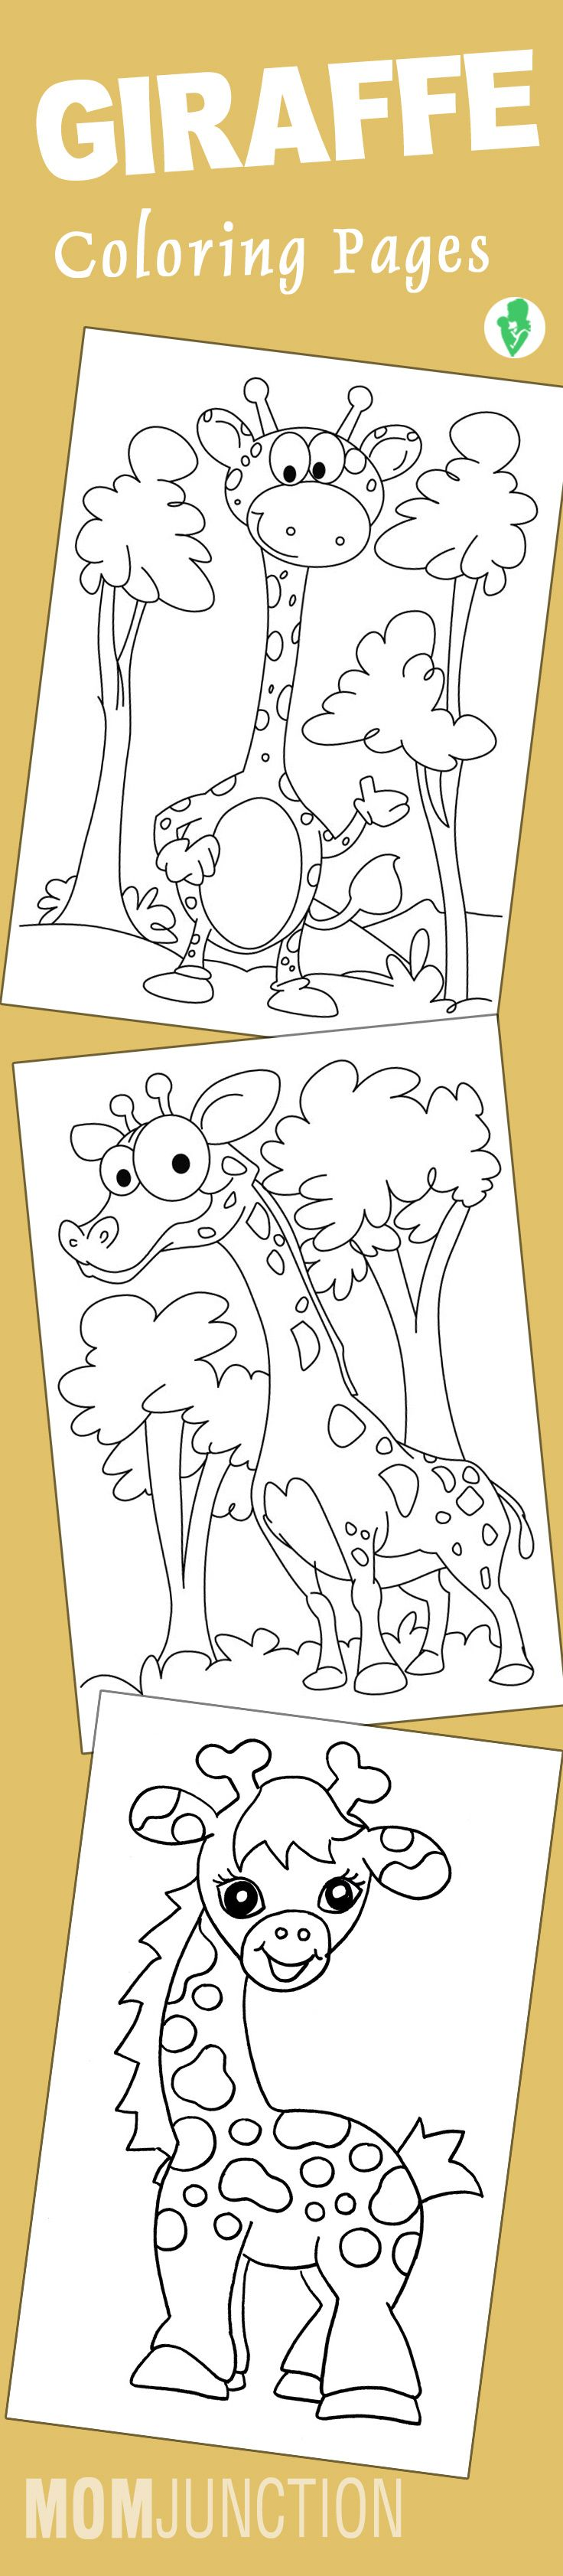 Coloring pages yokai - 20 Cute Giraffe Coloring Pages For Your Toddlers